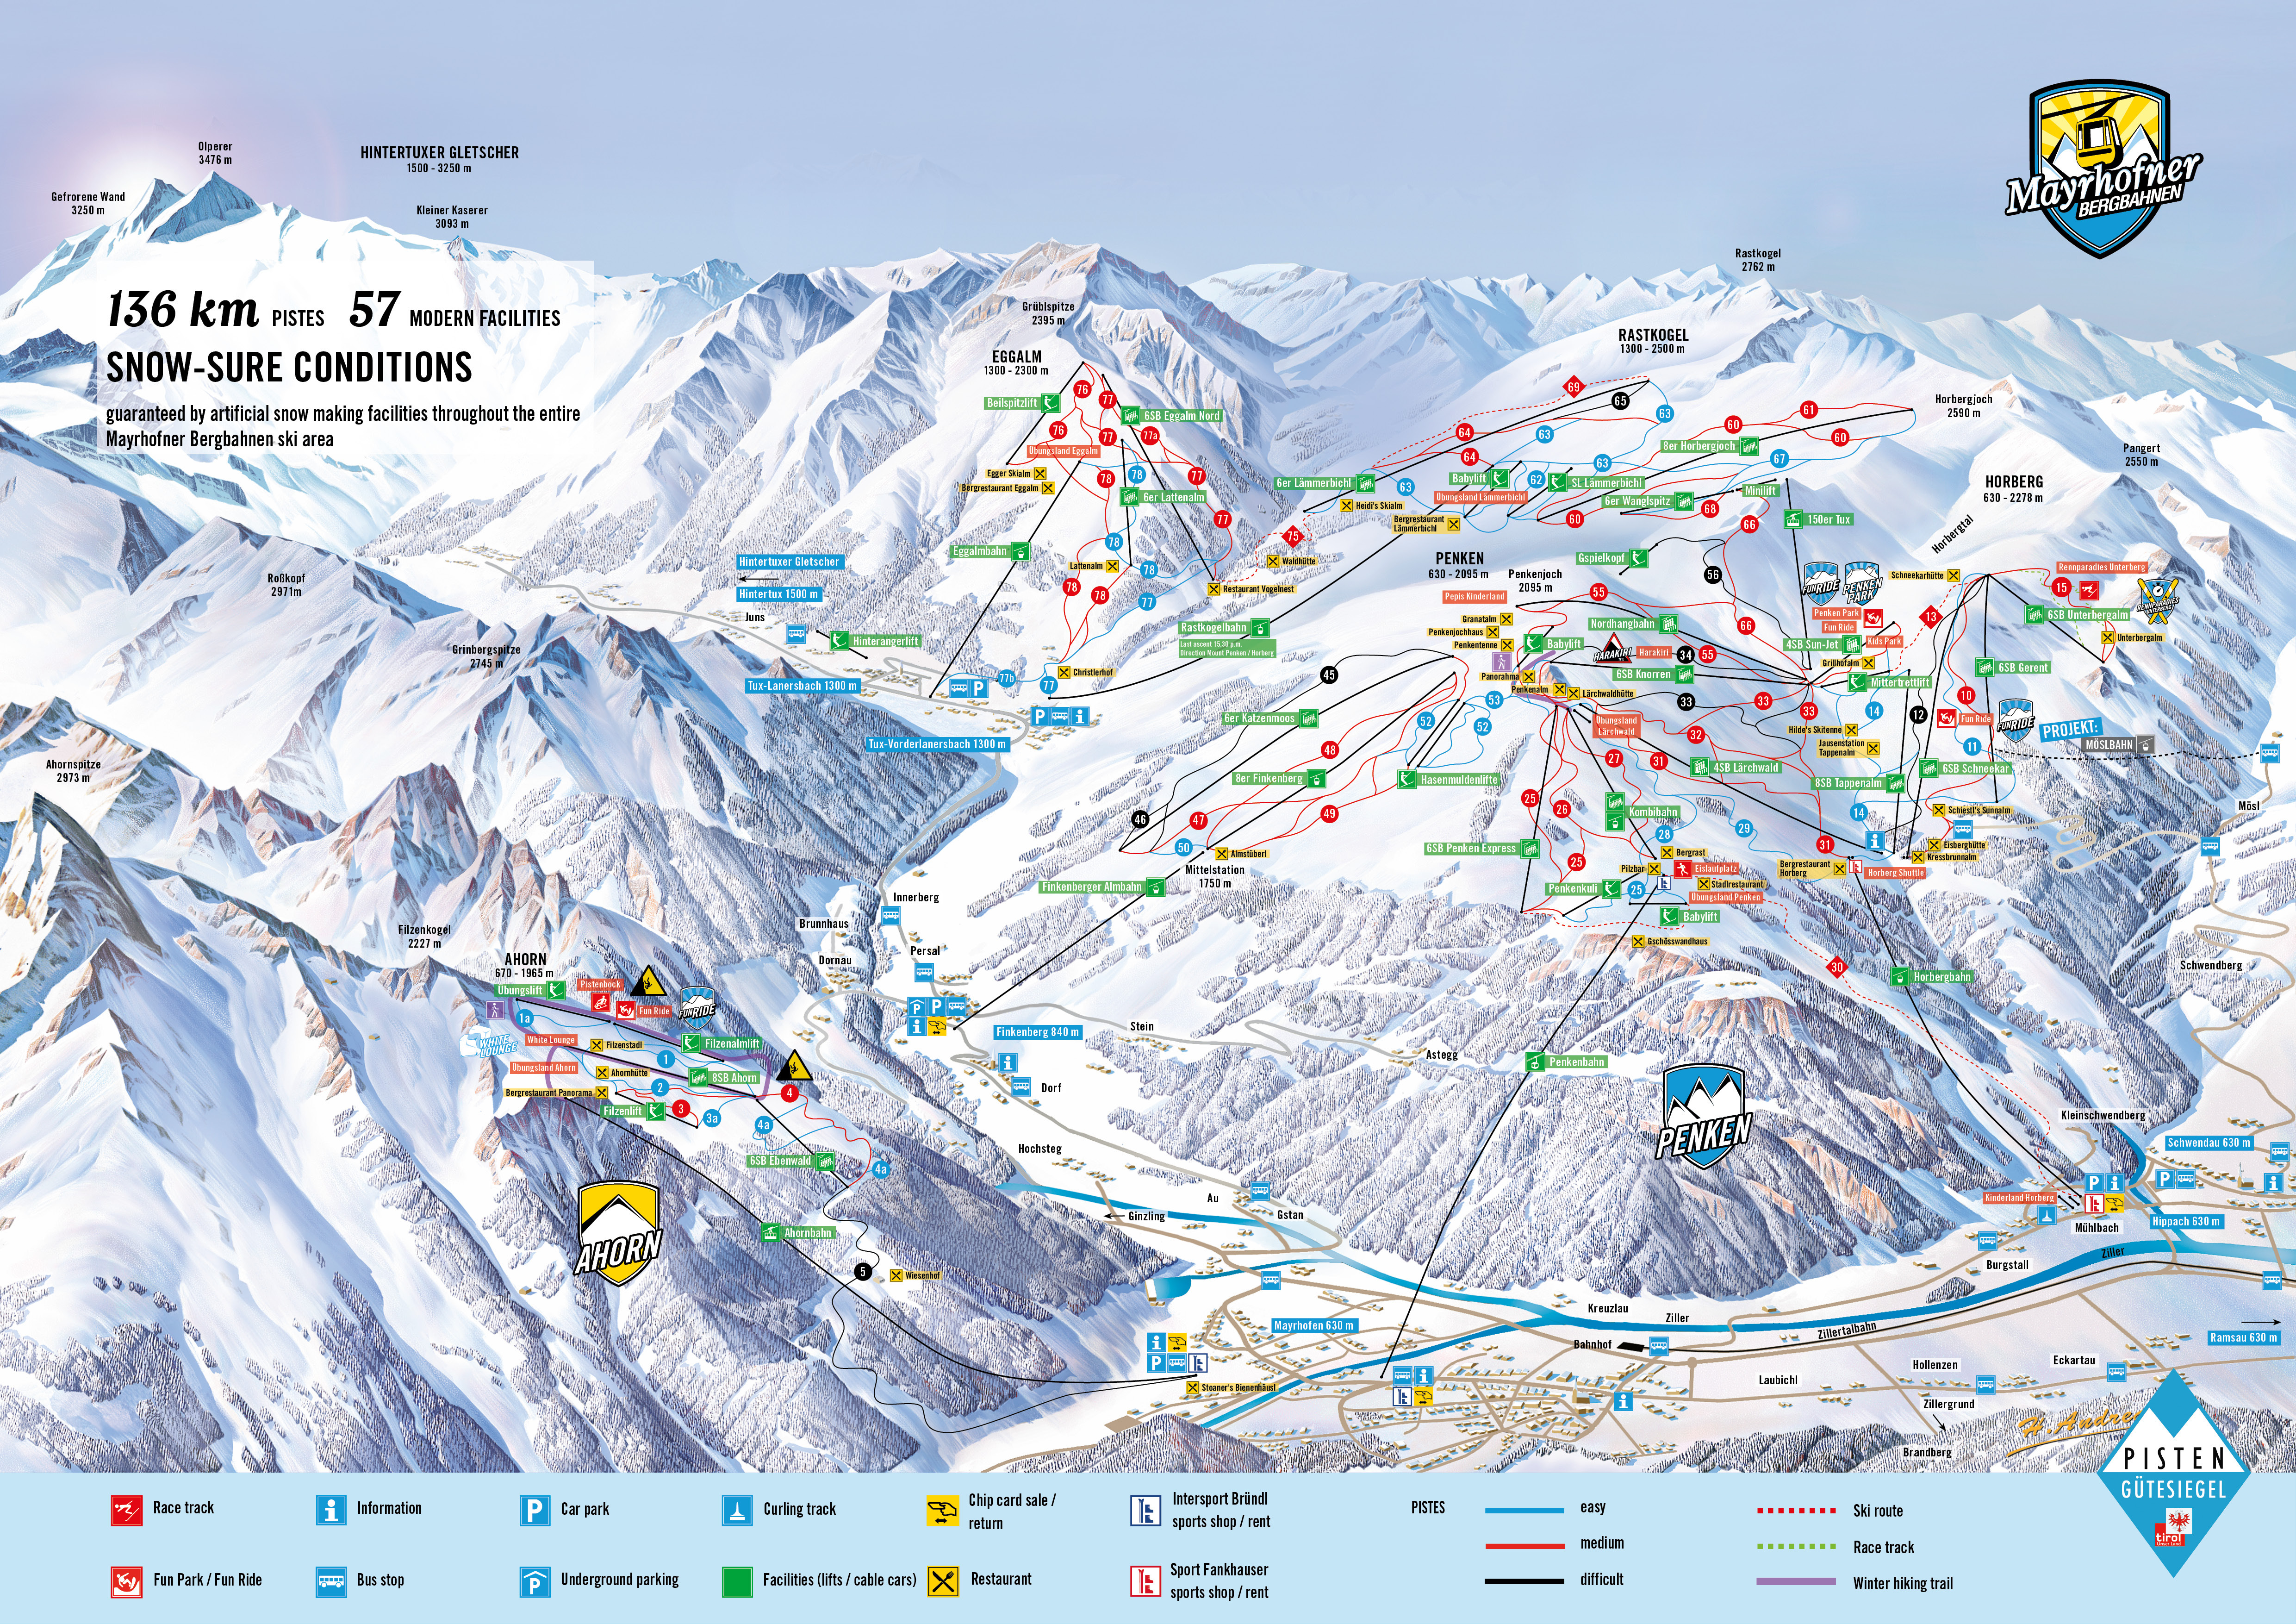 Mayrhofen Ski Trail Map Free Download